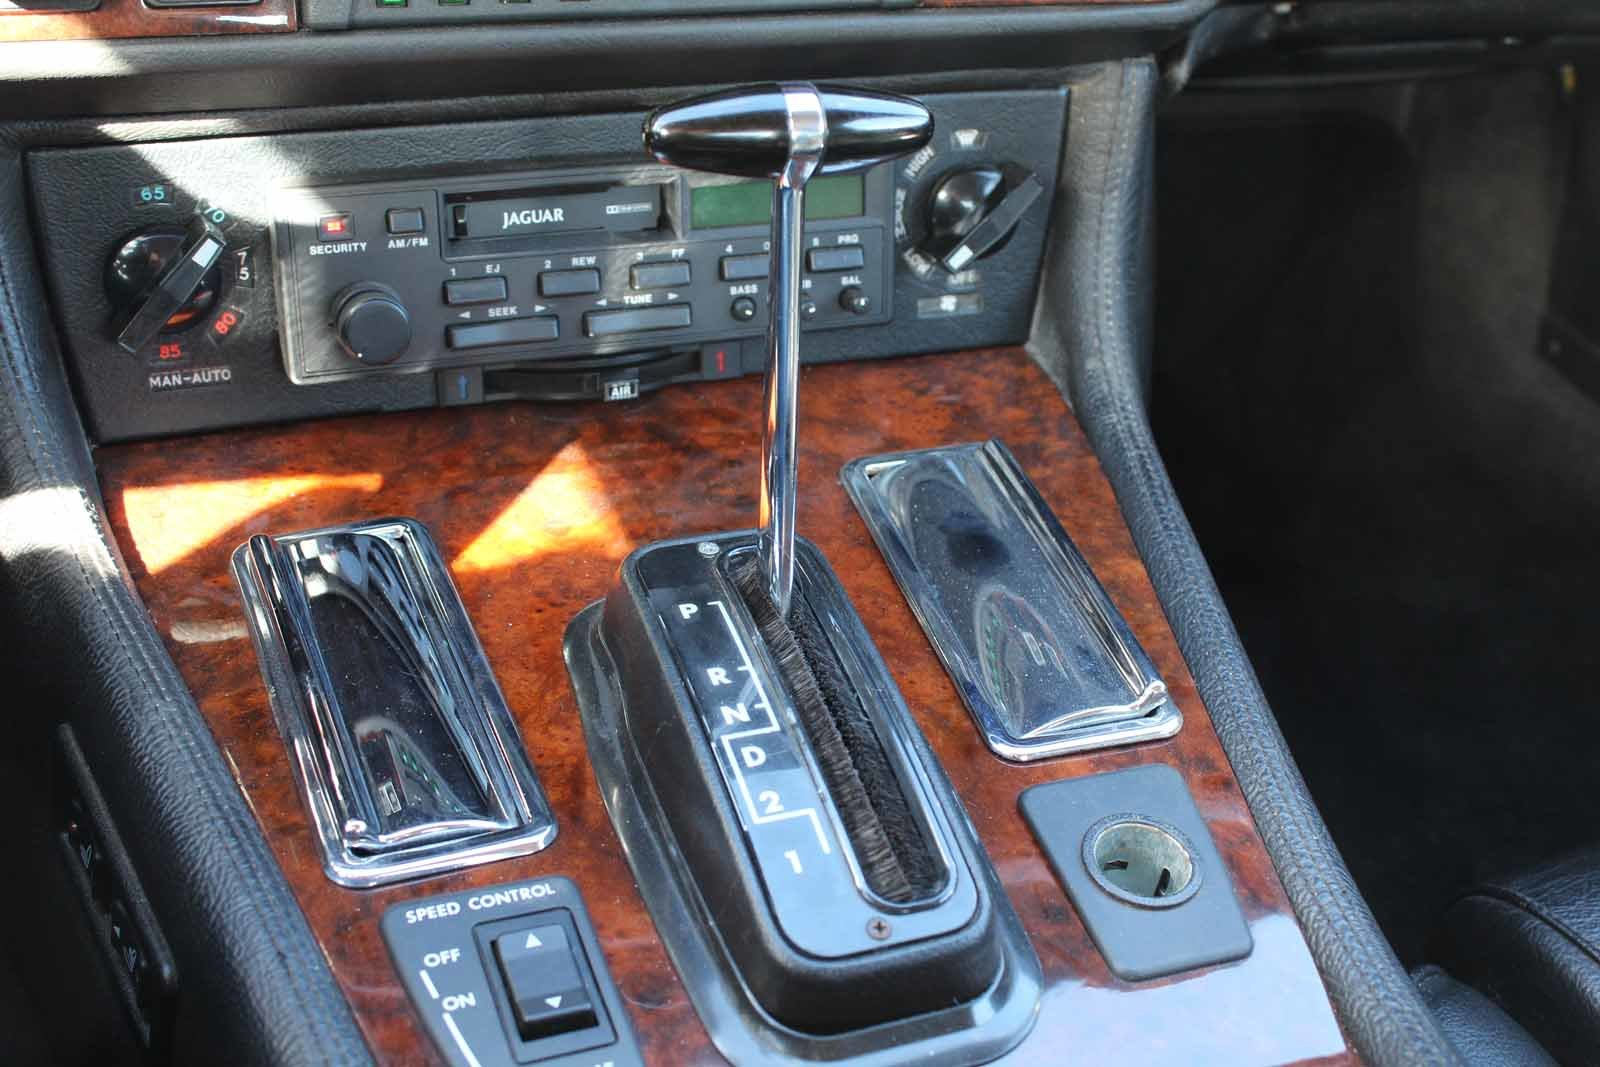 1989 Jaguar XJS V12 Coupe Just 3500 Miles! (LHD) For Sale (picture 18 of 19)